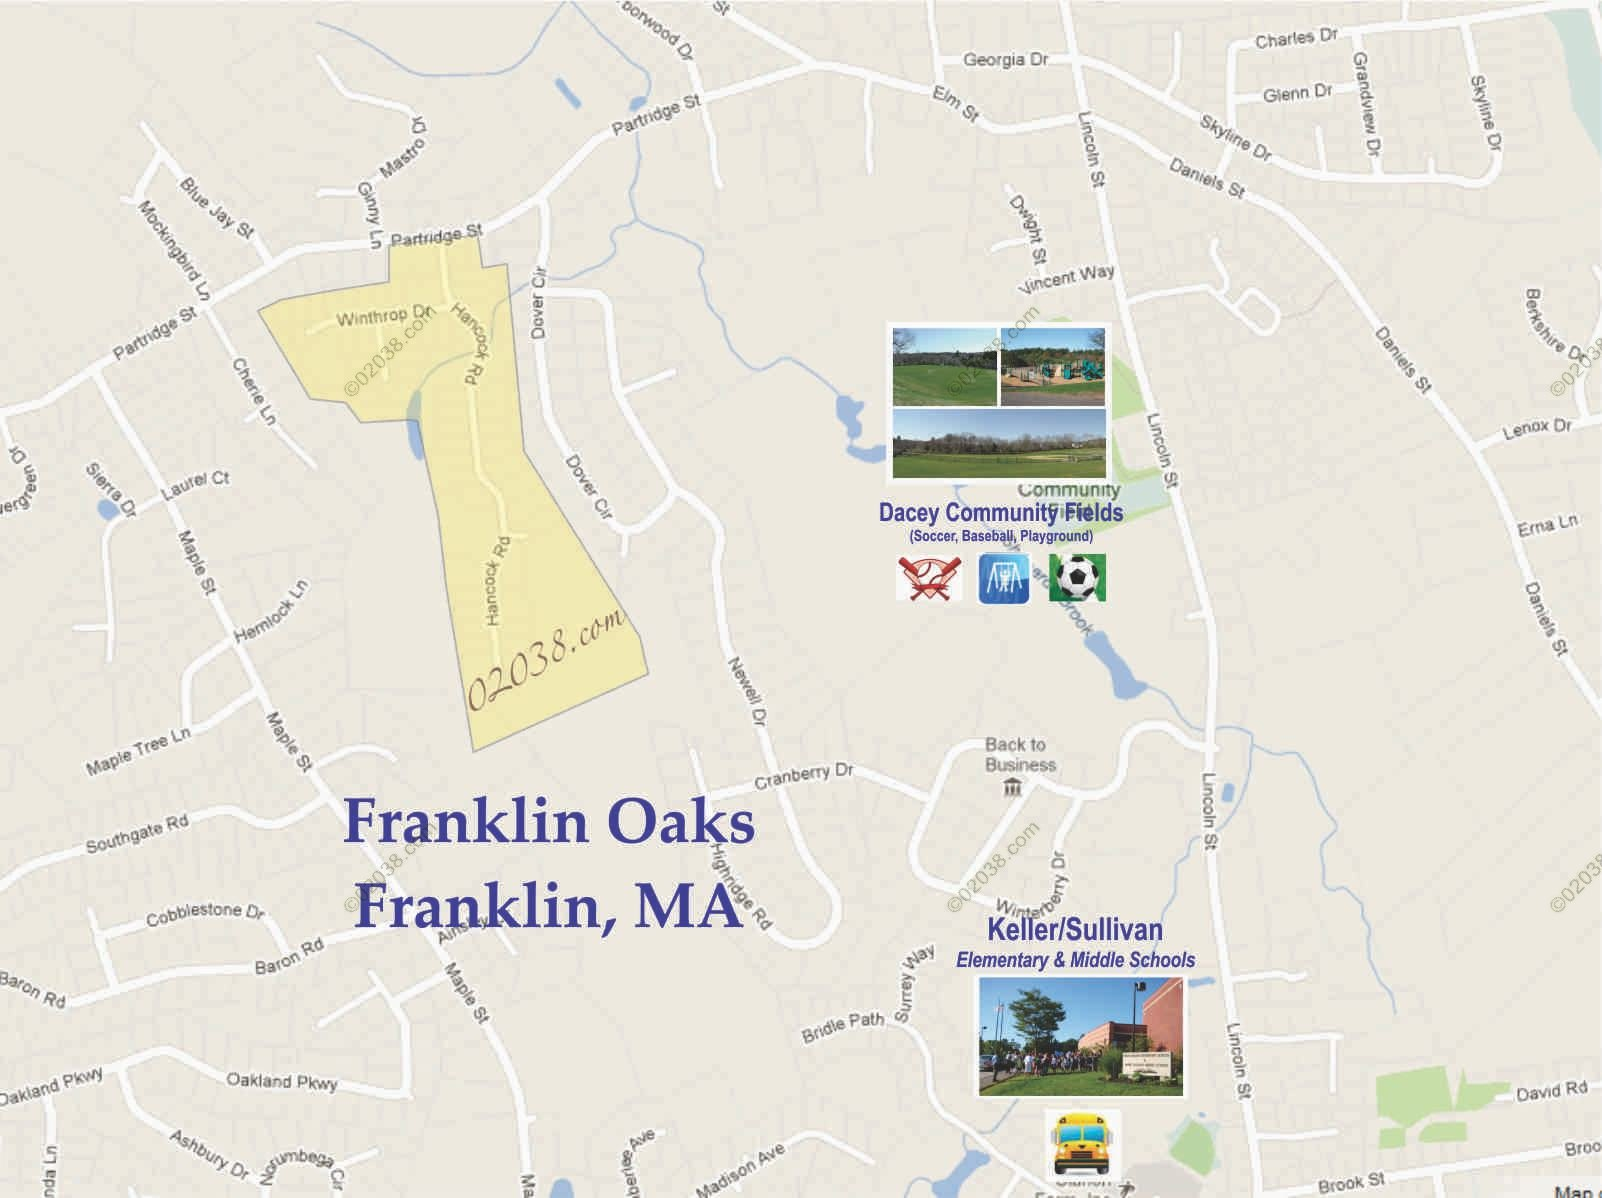 franklin oaks franklin ma map1